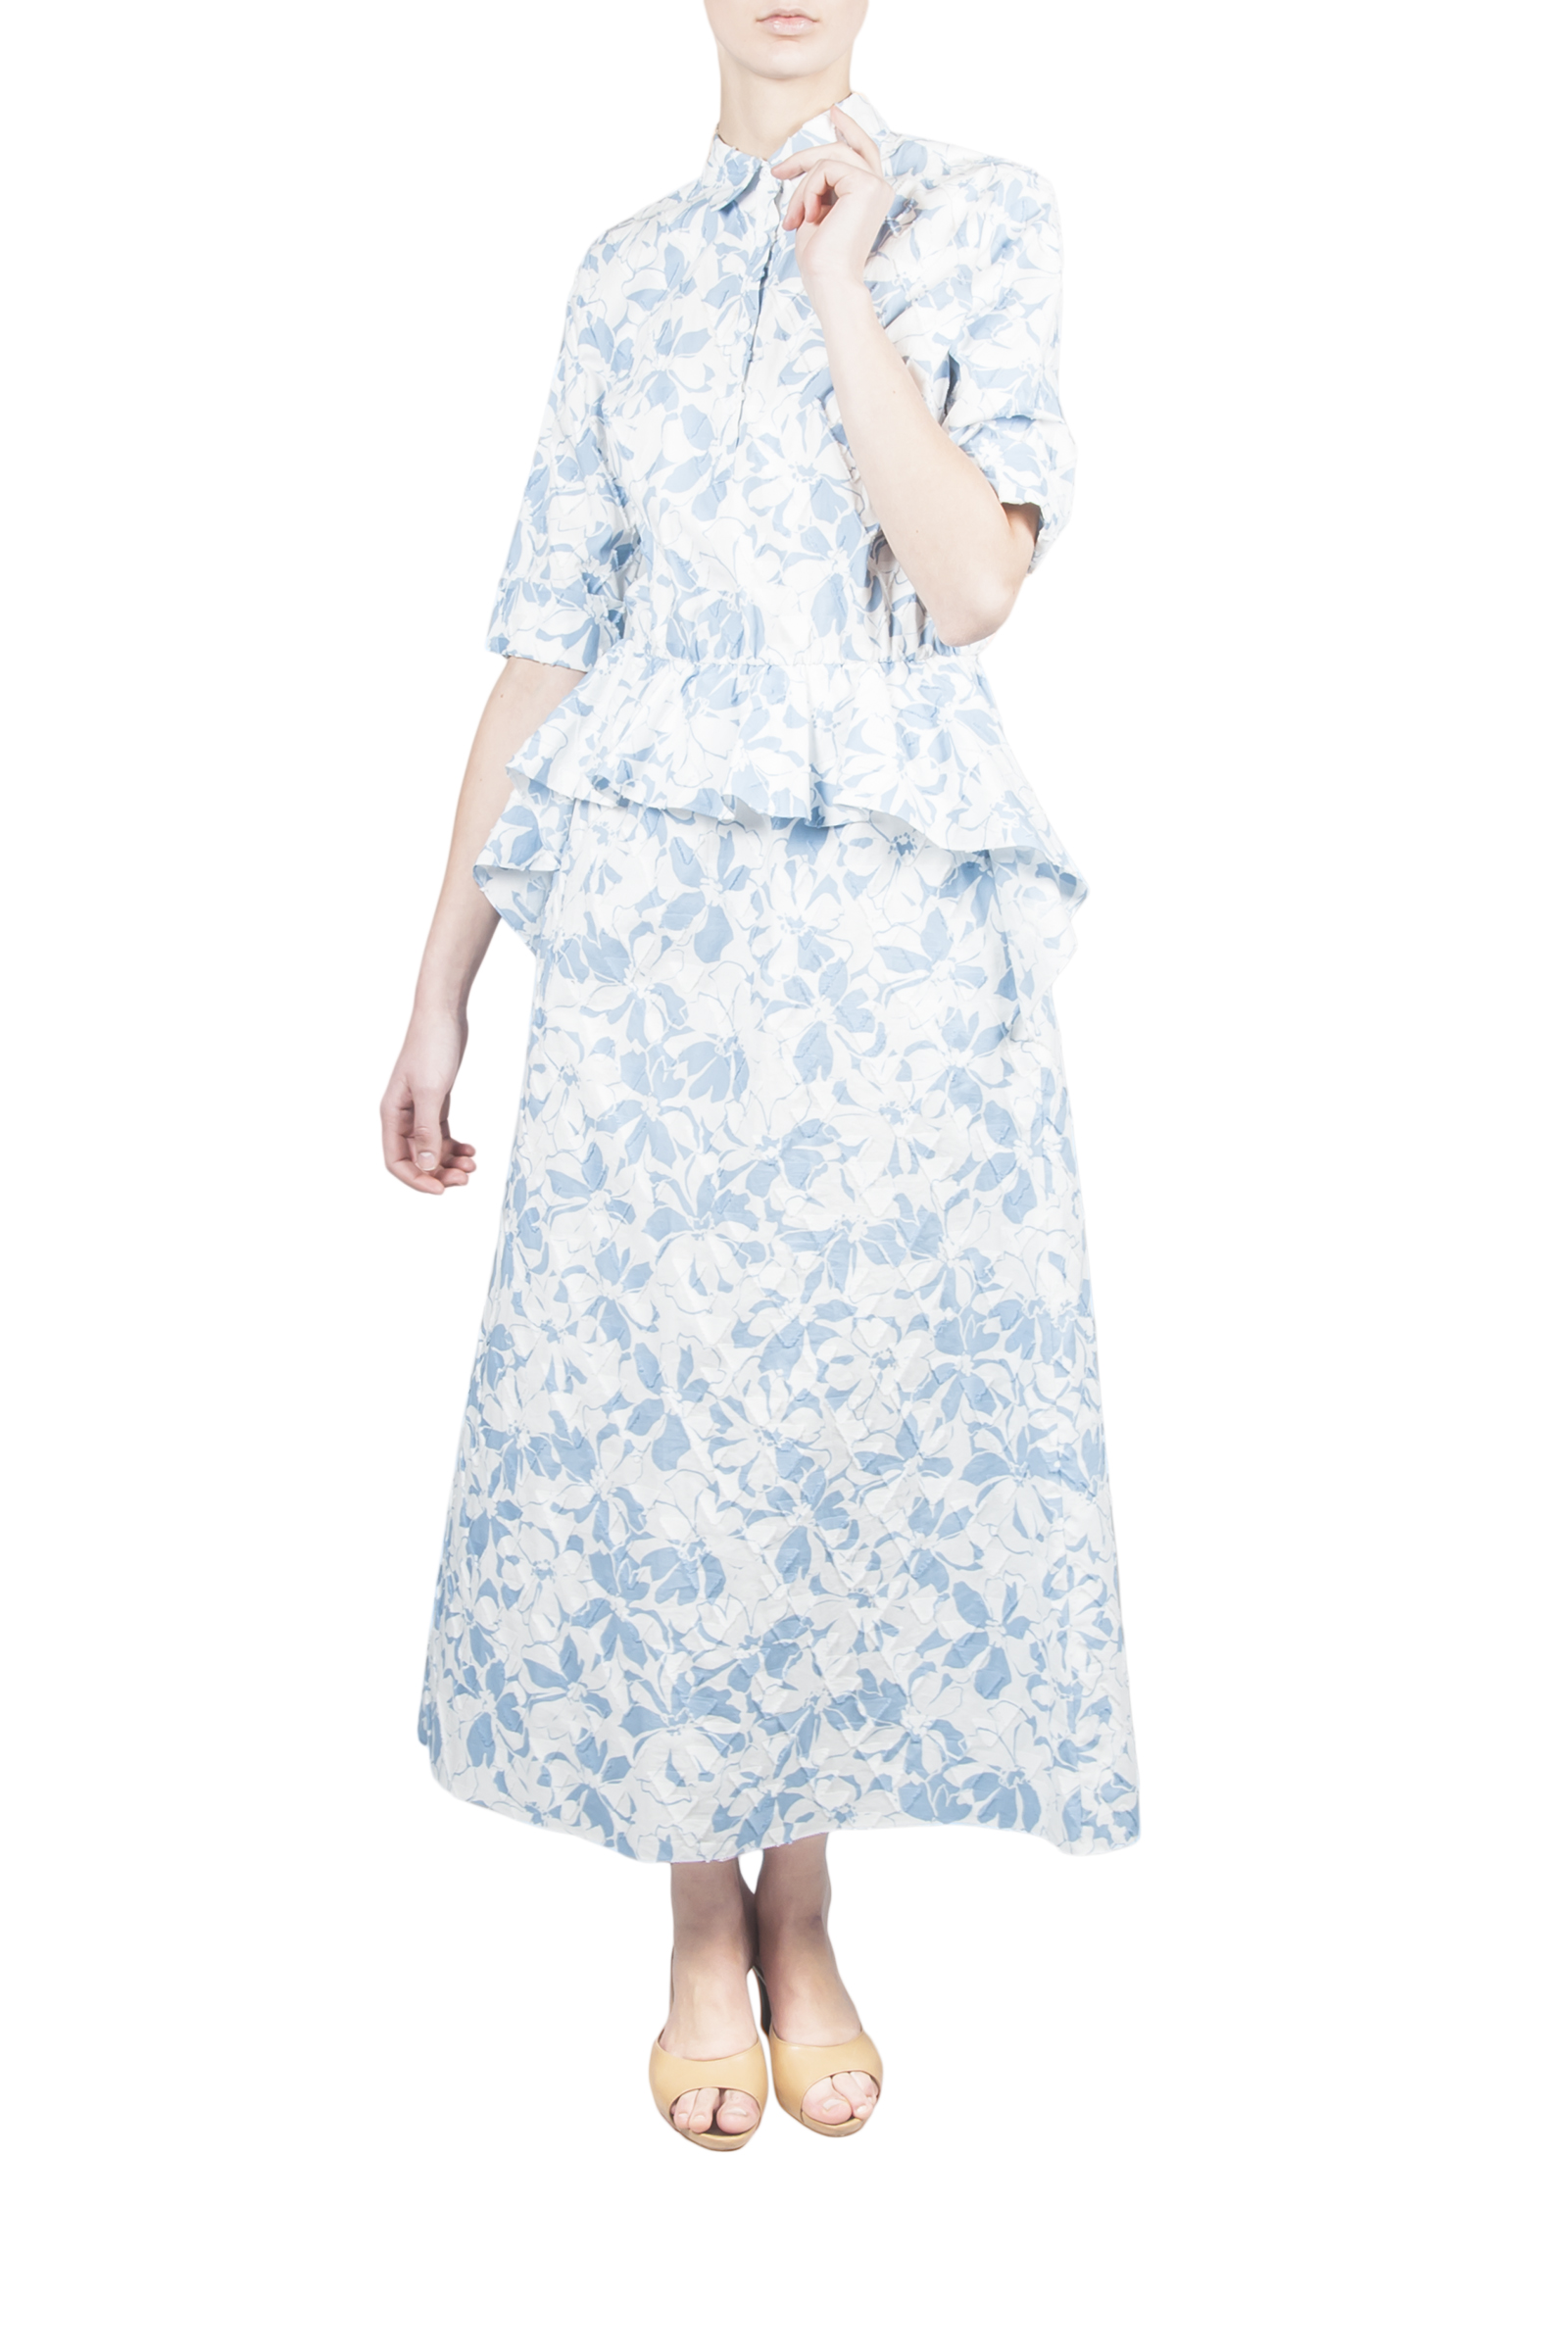 suitster-poustovit-ss17-buy-4